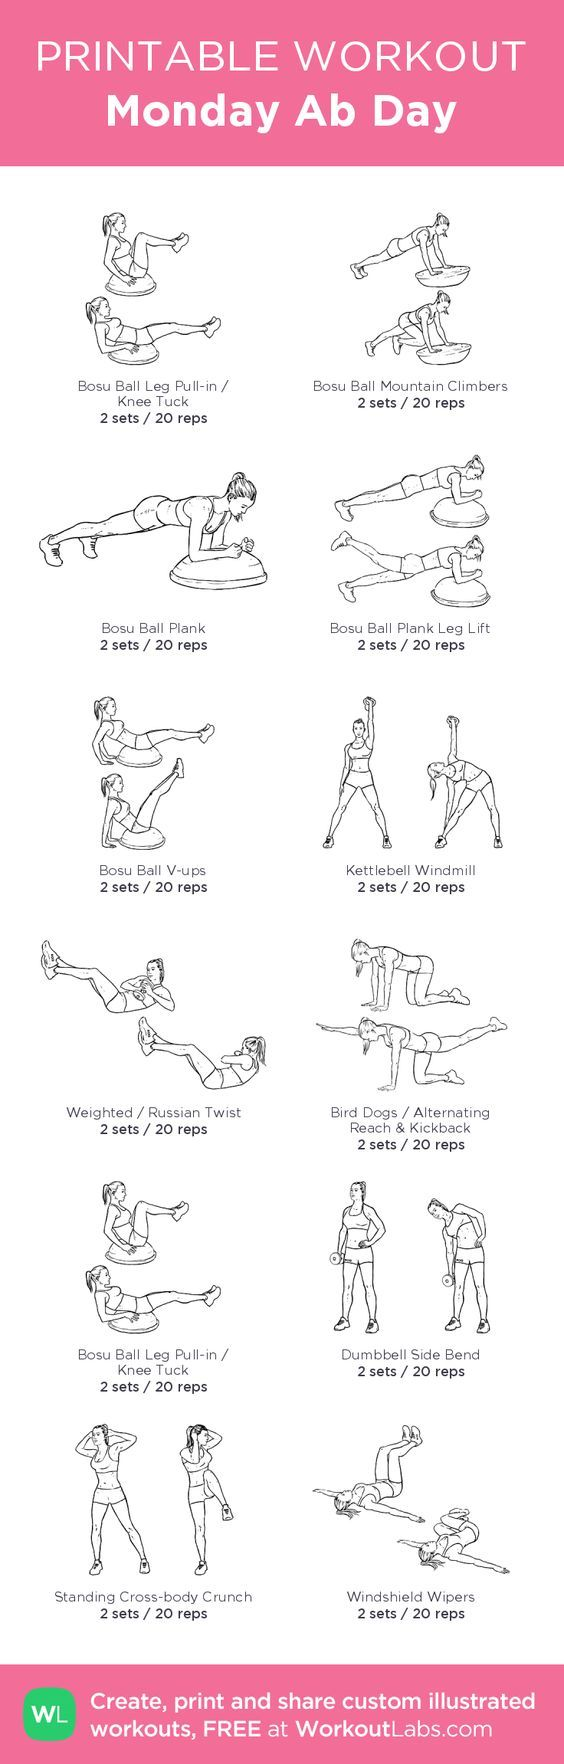 Monday Ab Day– my custom exercise plan created at WorkoutLabs.com • Click through to download as a printable workout PDF #customworkout